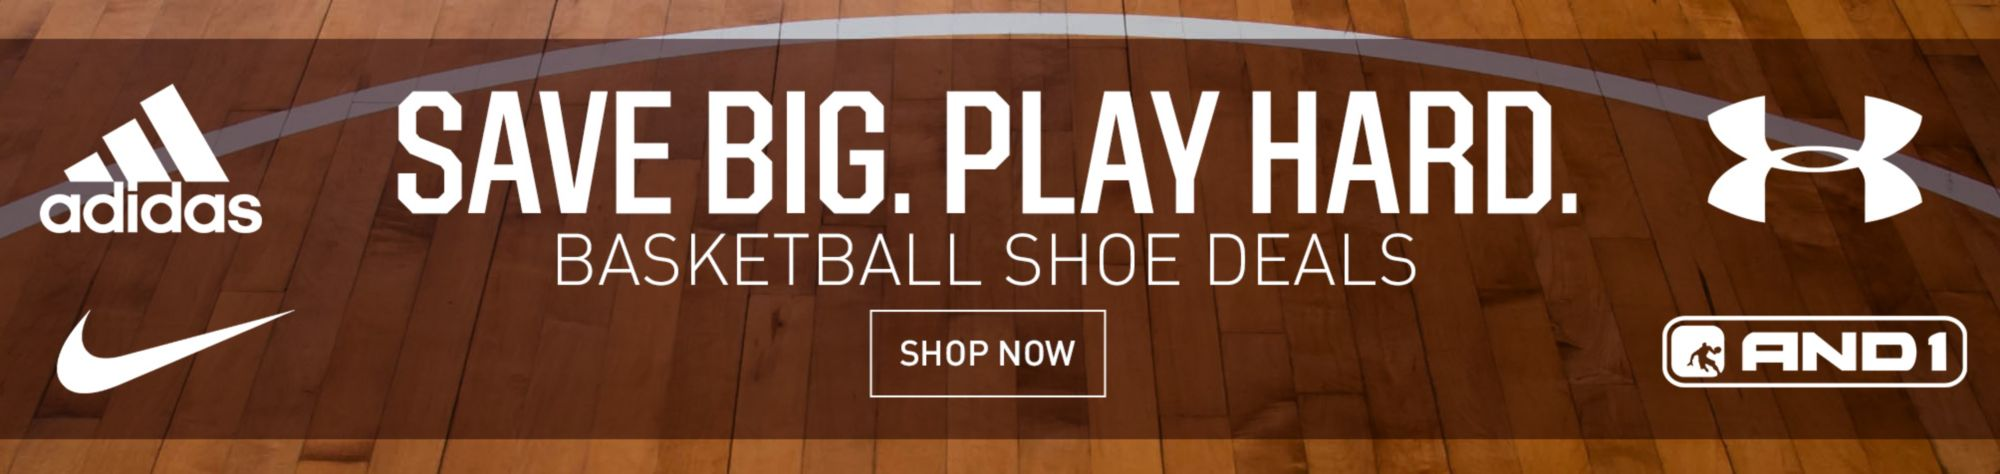 Shop Basketball Shoe Deals